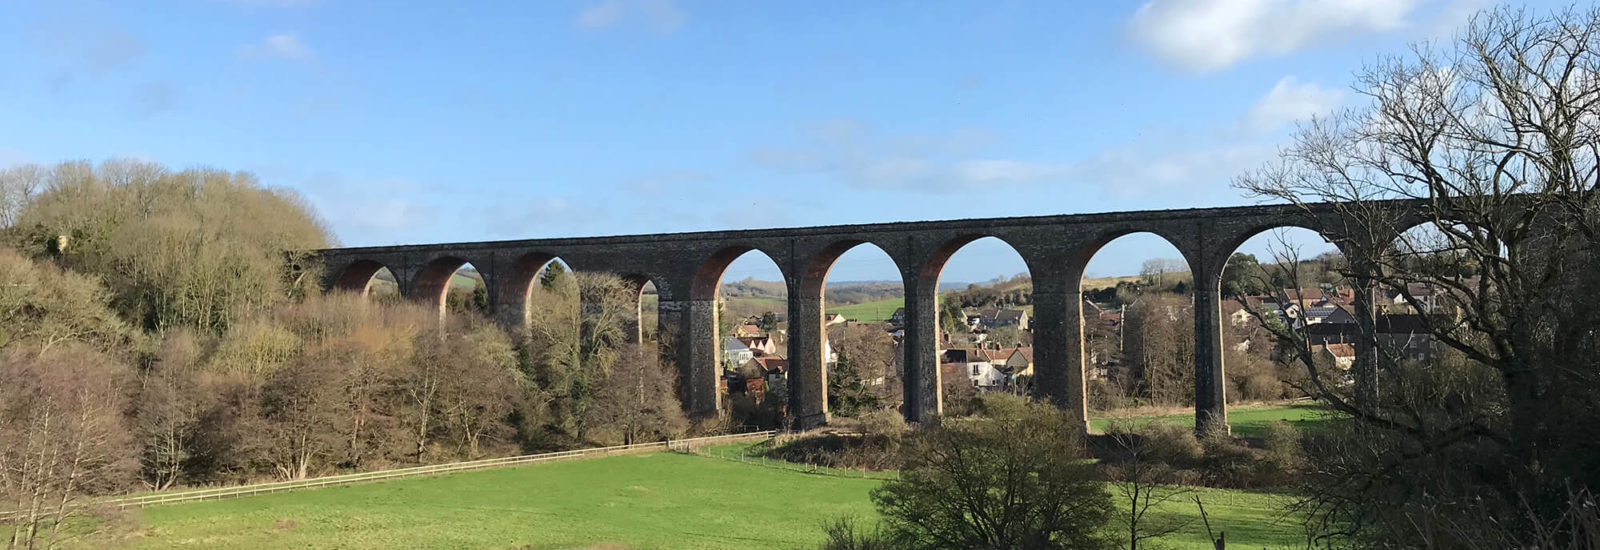 Image of Pensford Viaduct